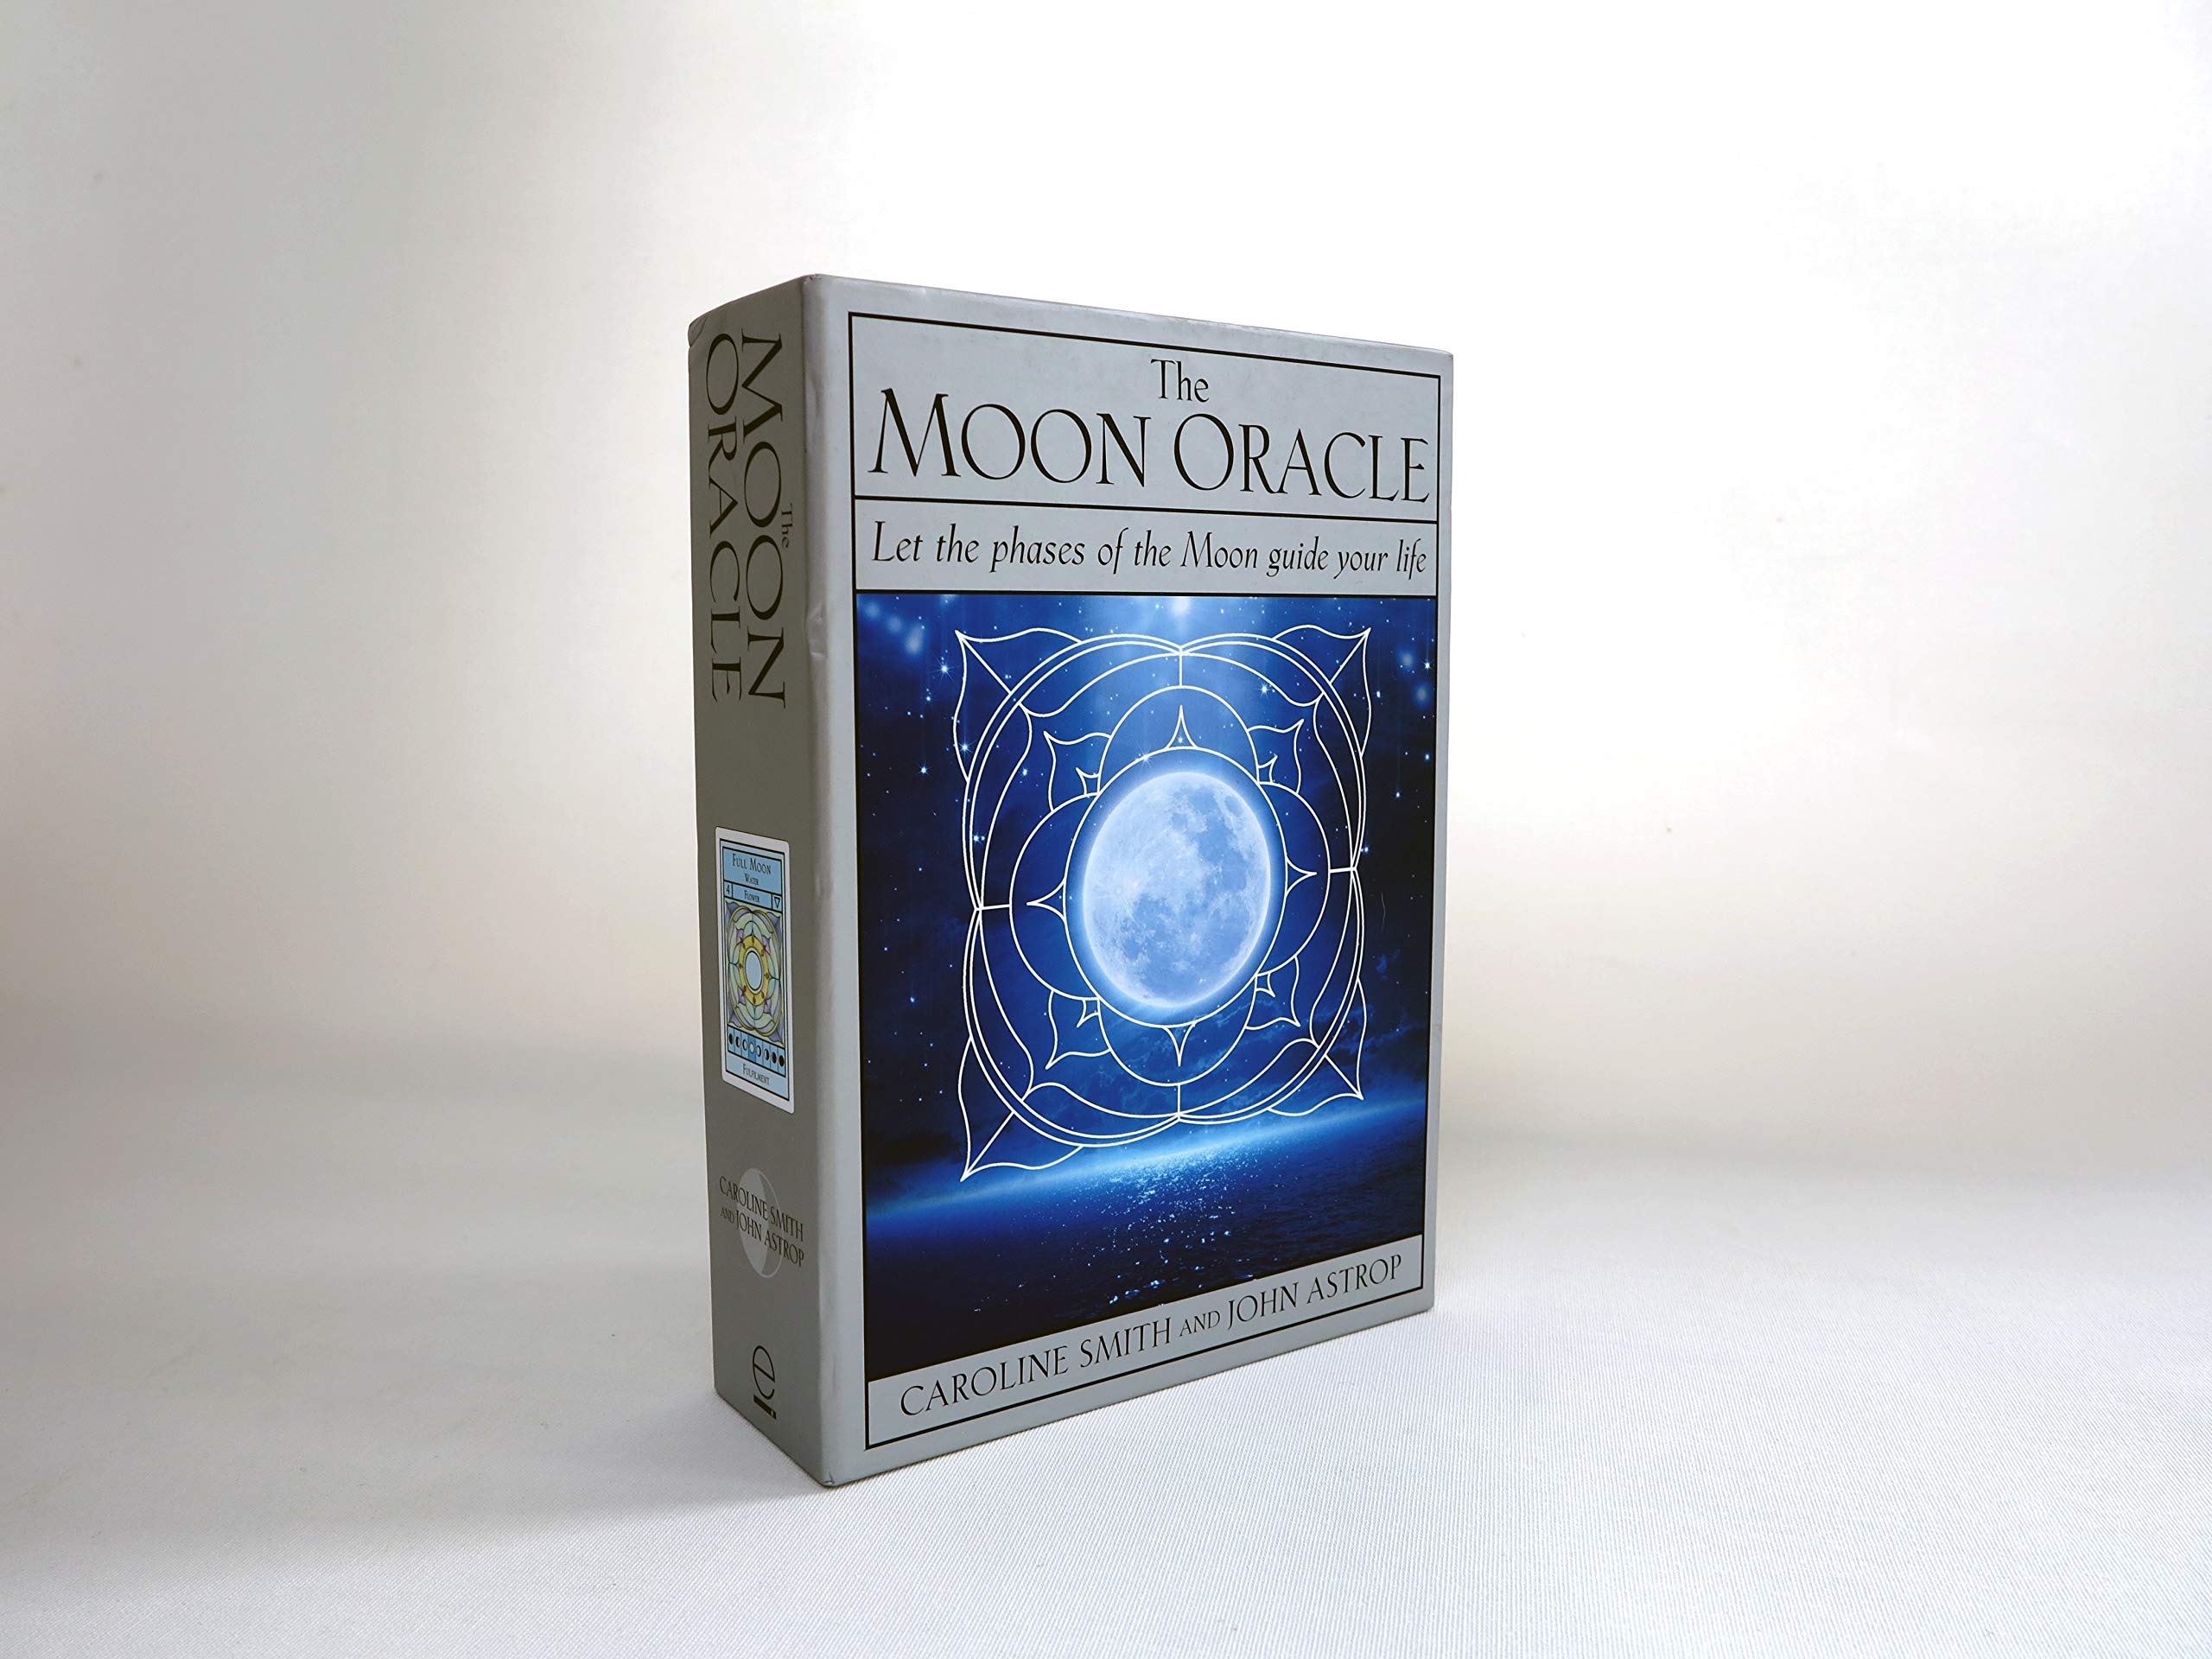 The Moon Oracle Let Phases Of Guide Your Life You Will Diagram With Free Search Resultsgreat Deals Caroline Smith John Astrop 9781859060414 Books